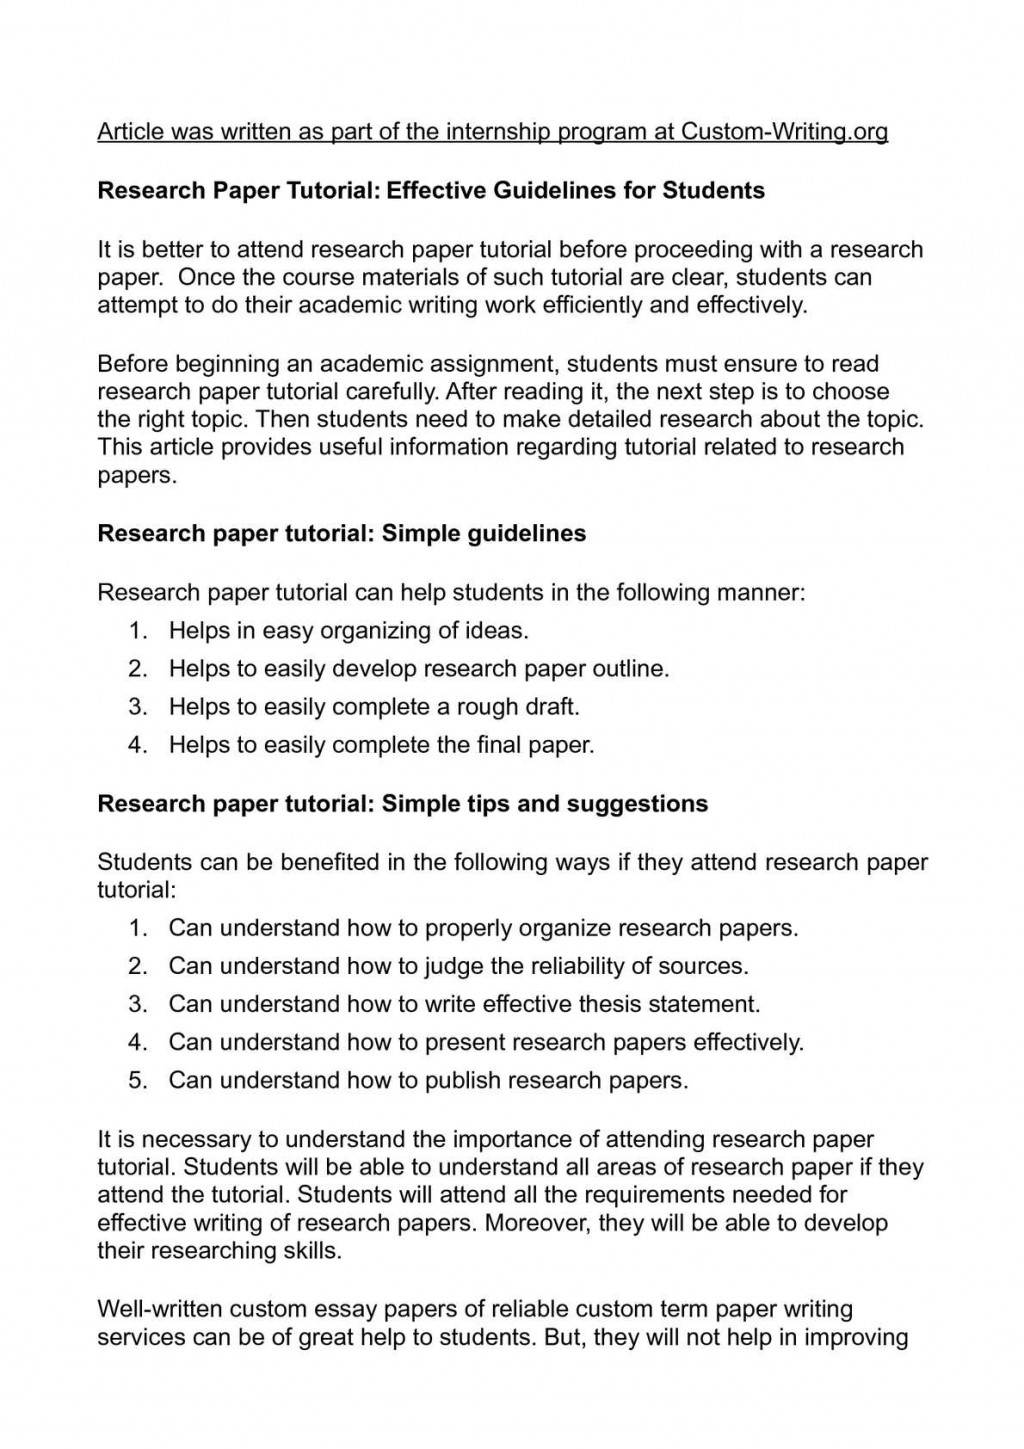 010 Custom Writing Research Papers Paper Exceptional Large